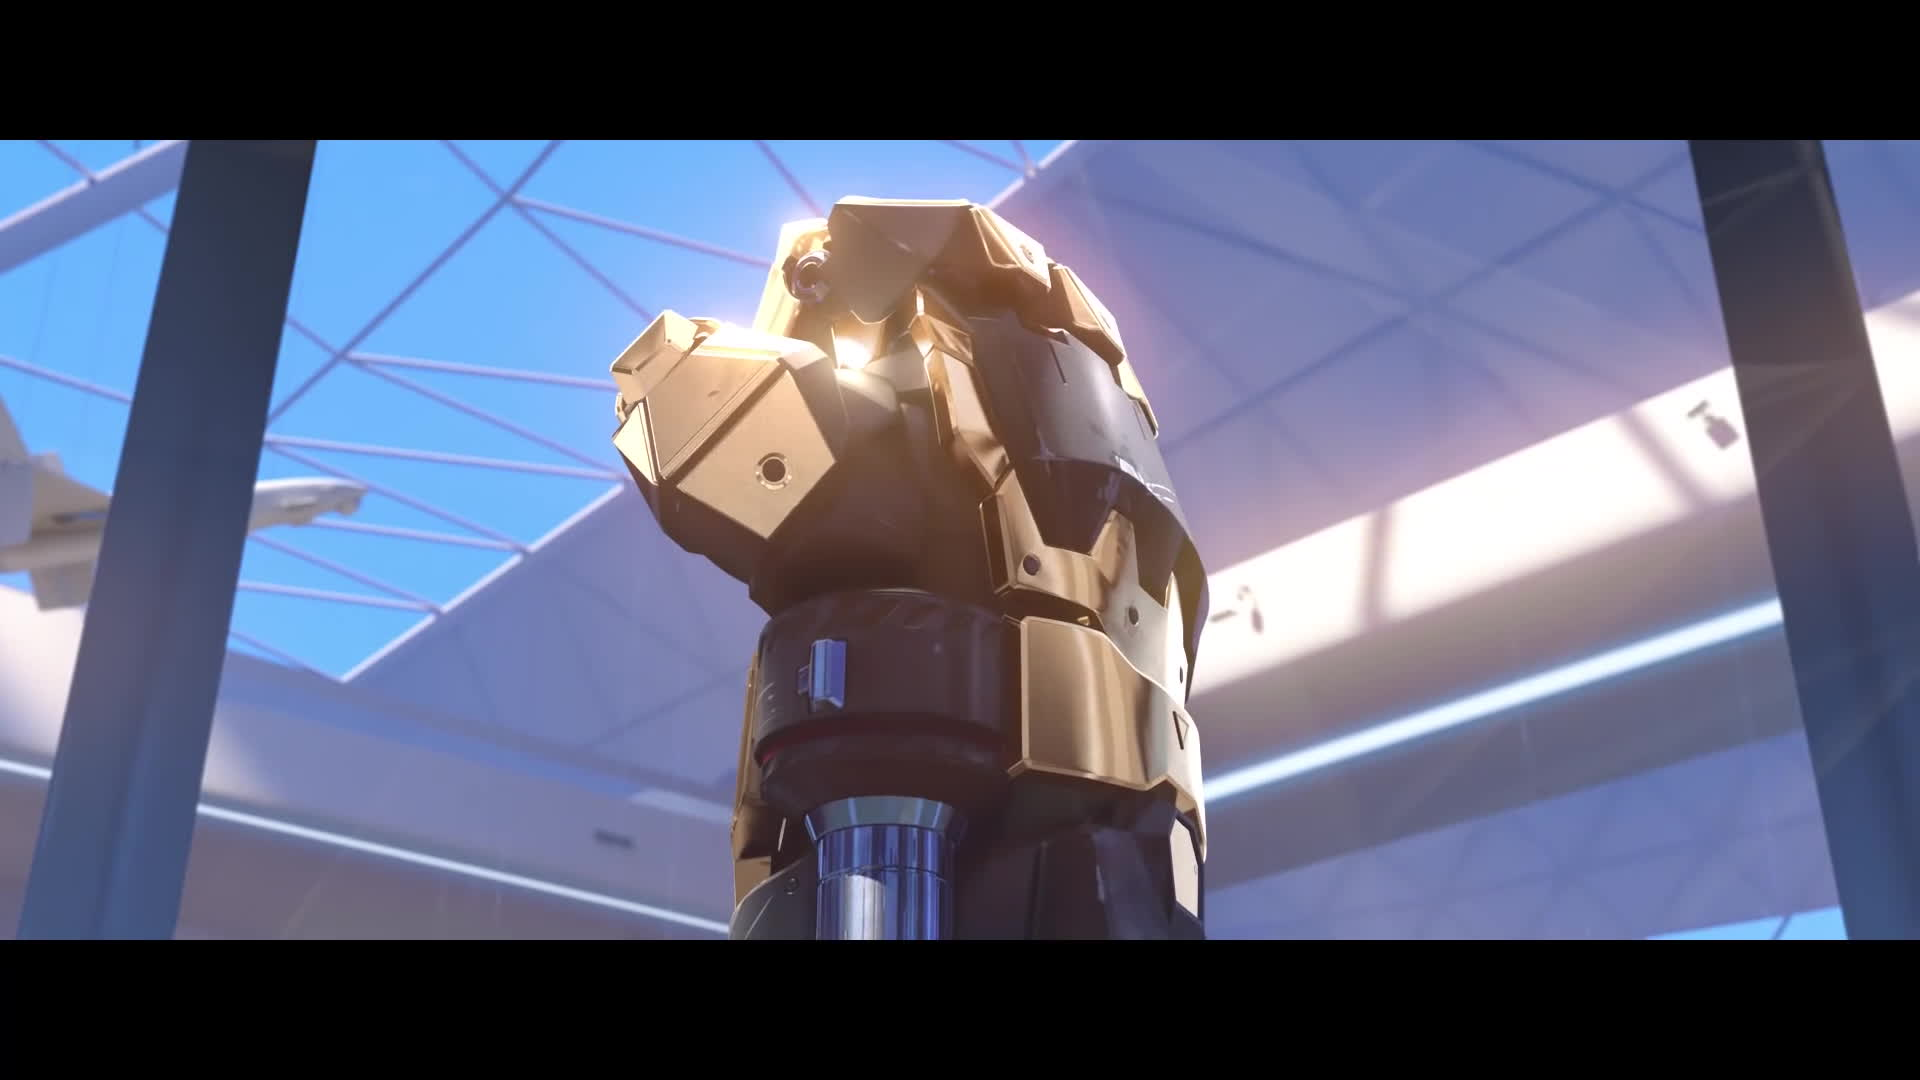 blizzard, blizzard entertainment, overwatch, Doomfist GIFs